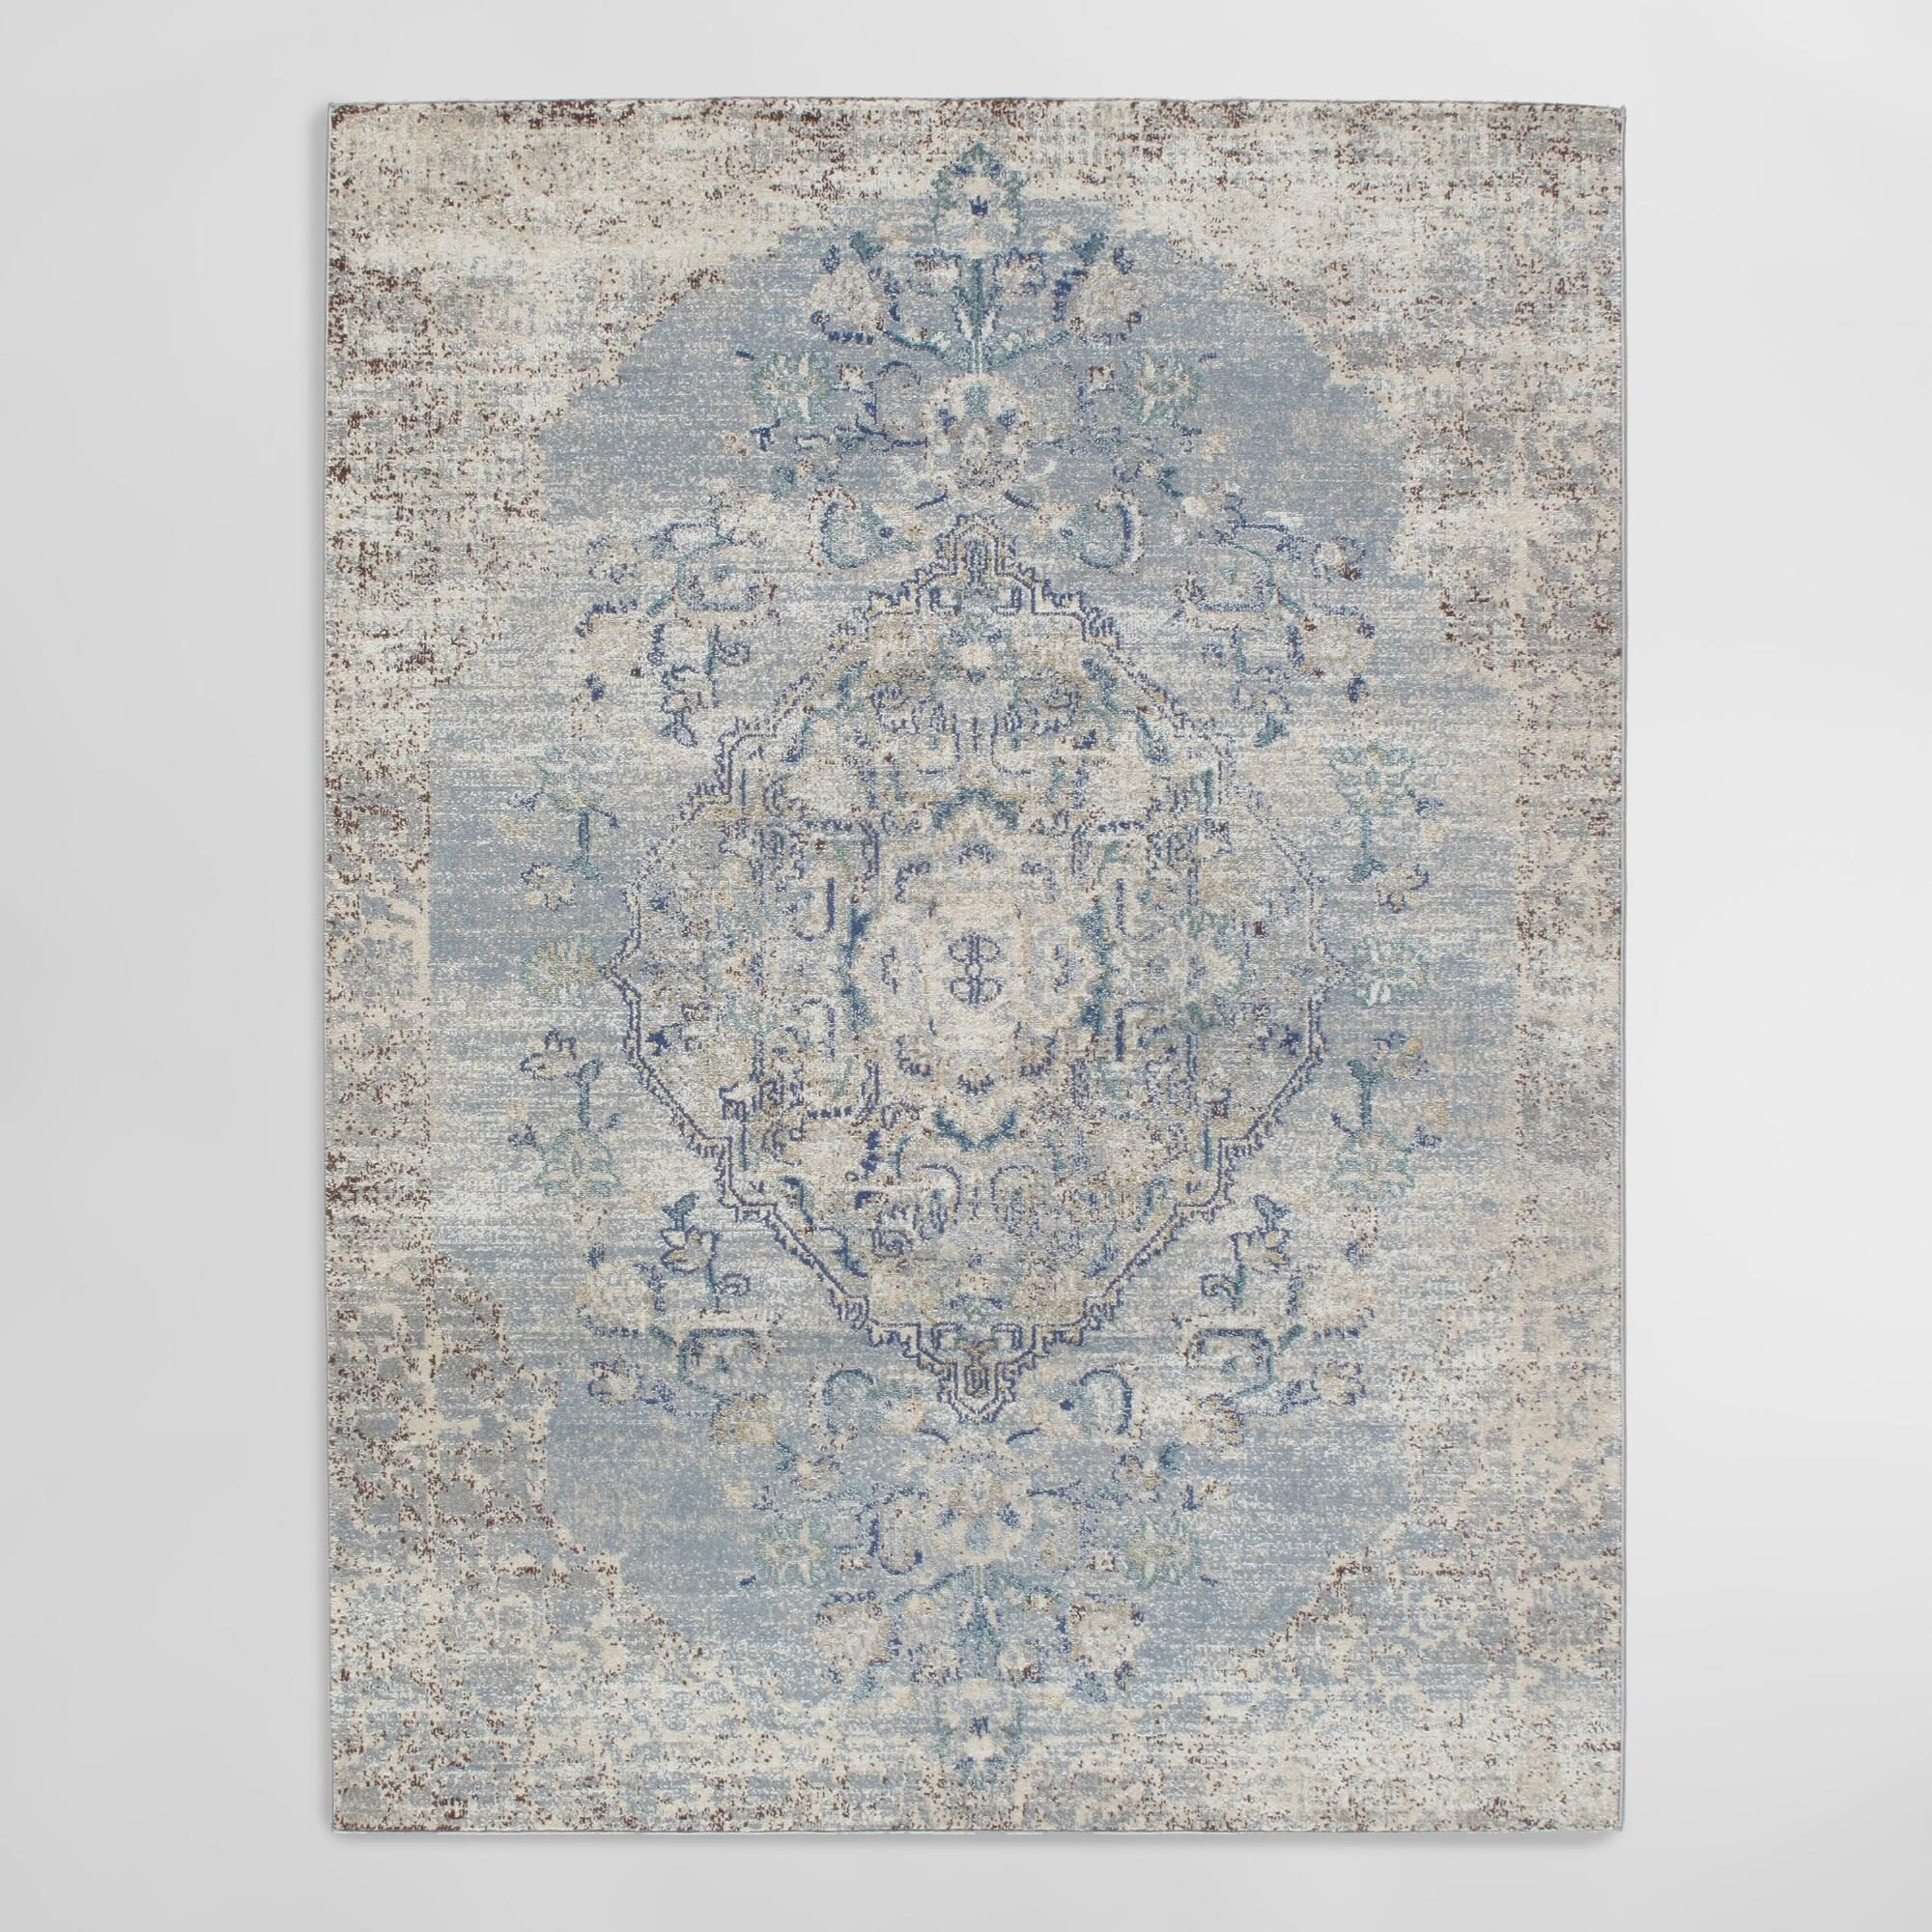 "Blue Nostalgia Area Rug - 3Ft11""x5Ft7"" by World Market 3Ft11""x5Ft7"""